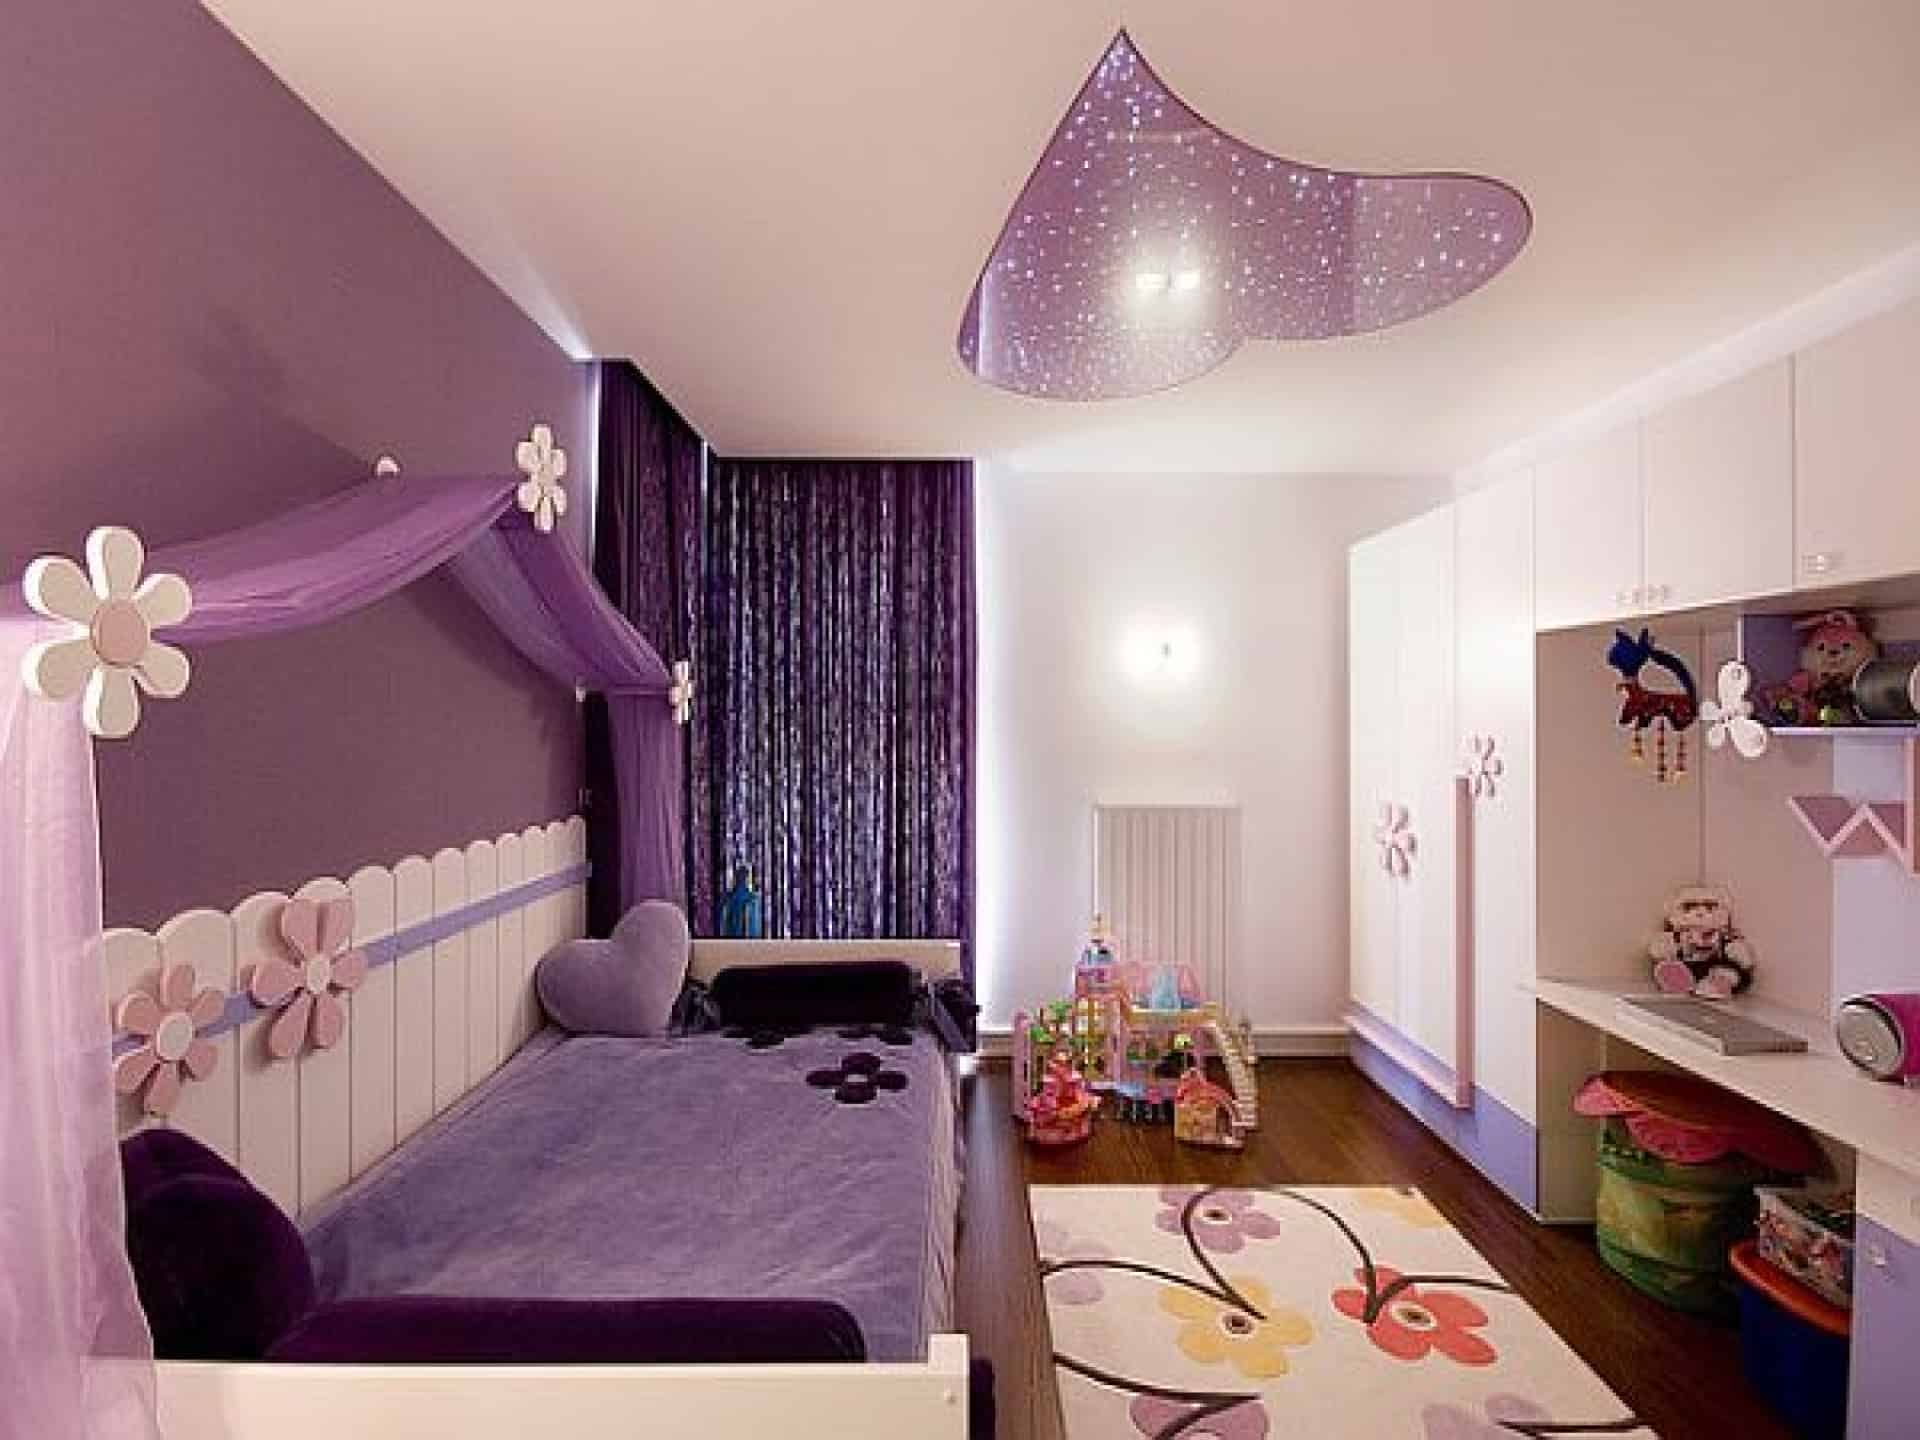 Home decor trends 2017 purple teen room - Interior designs for simple bedroom of teenegers ...